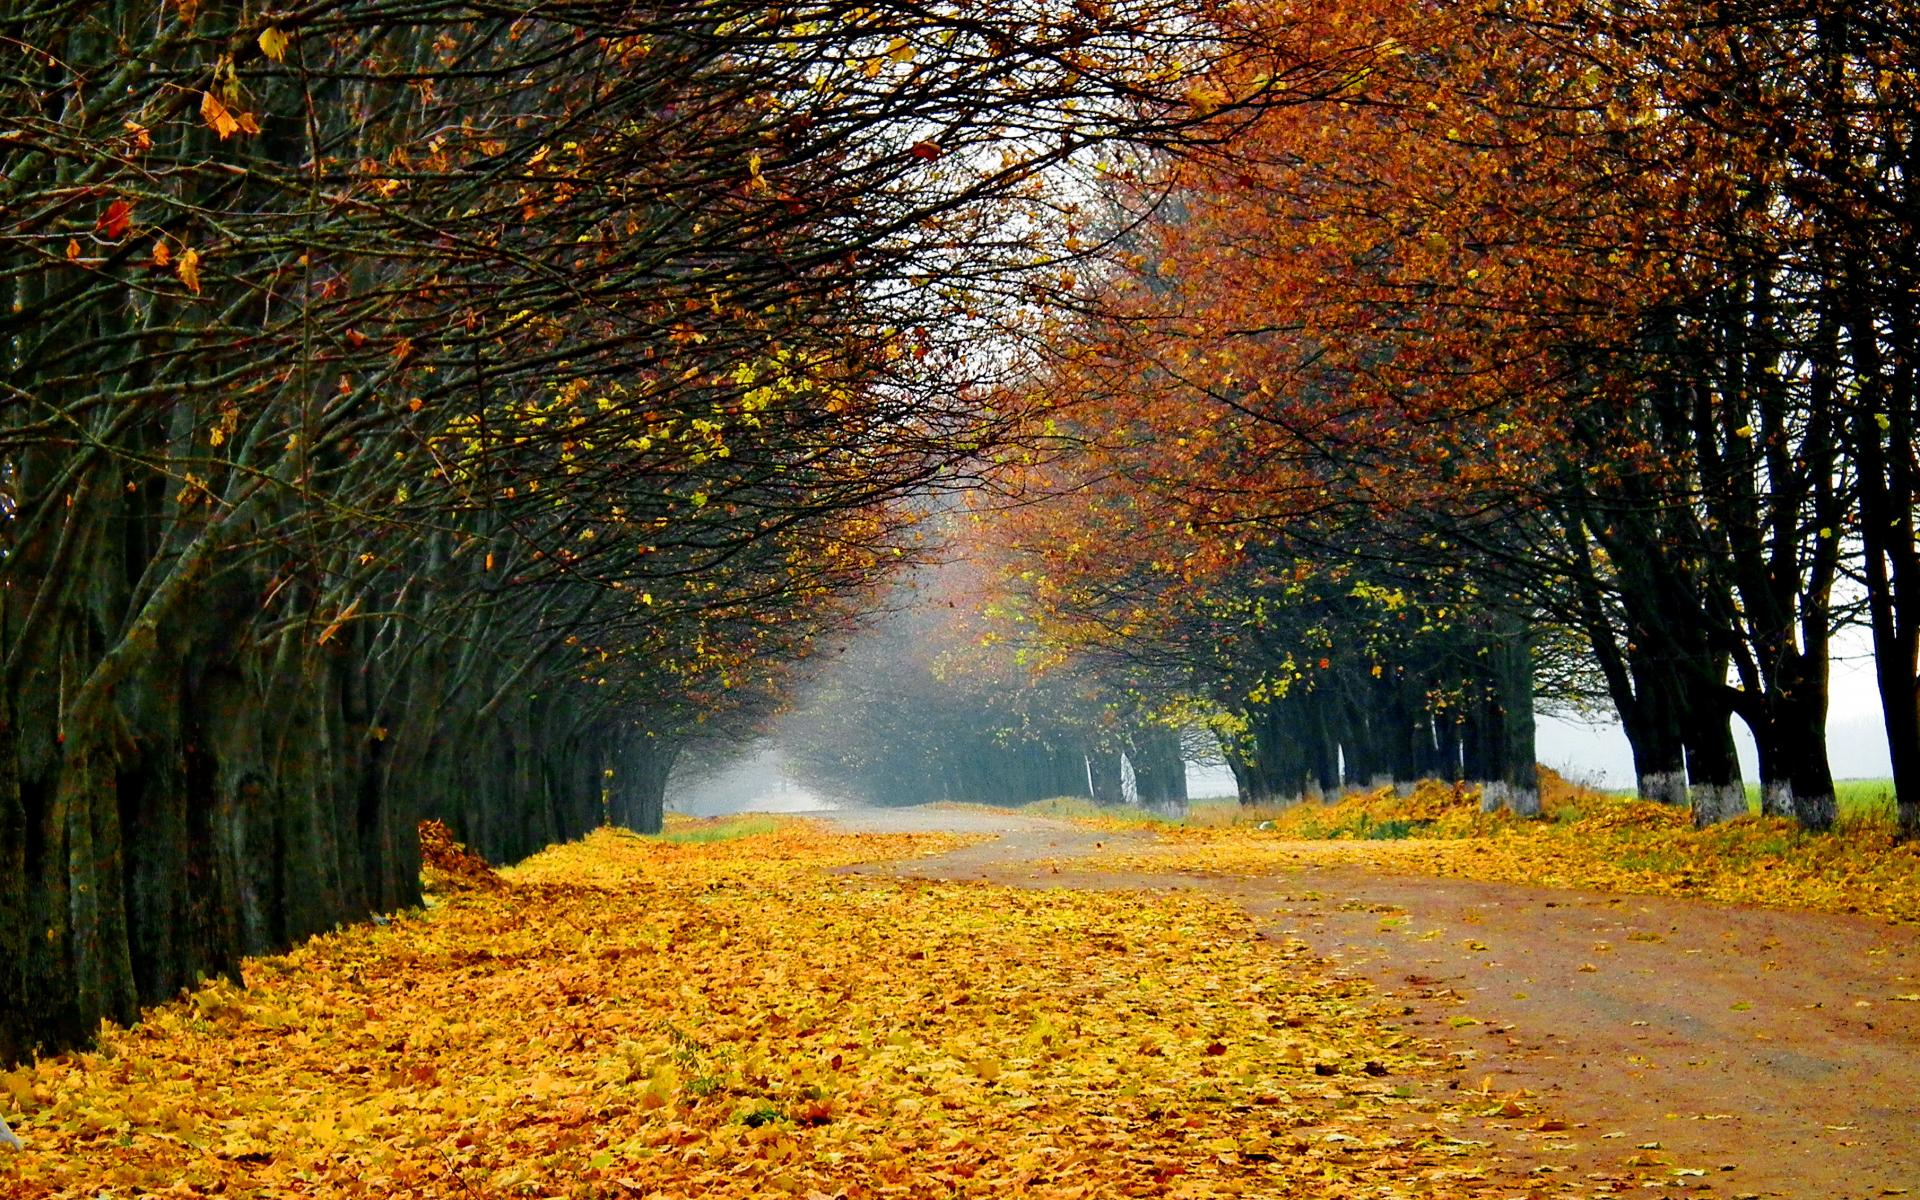 world roads street path trail nature landscapes trees garden park leaves autumn fall seasons